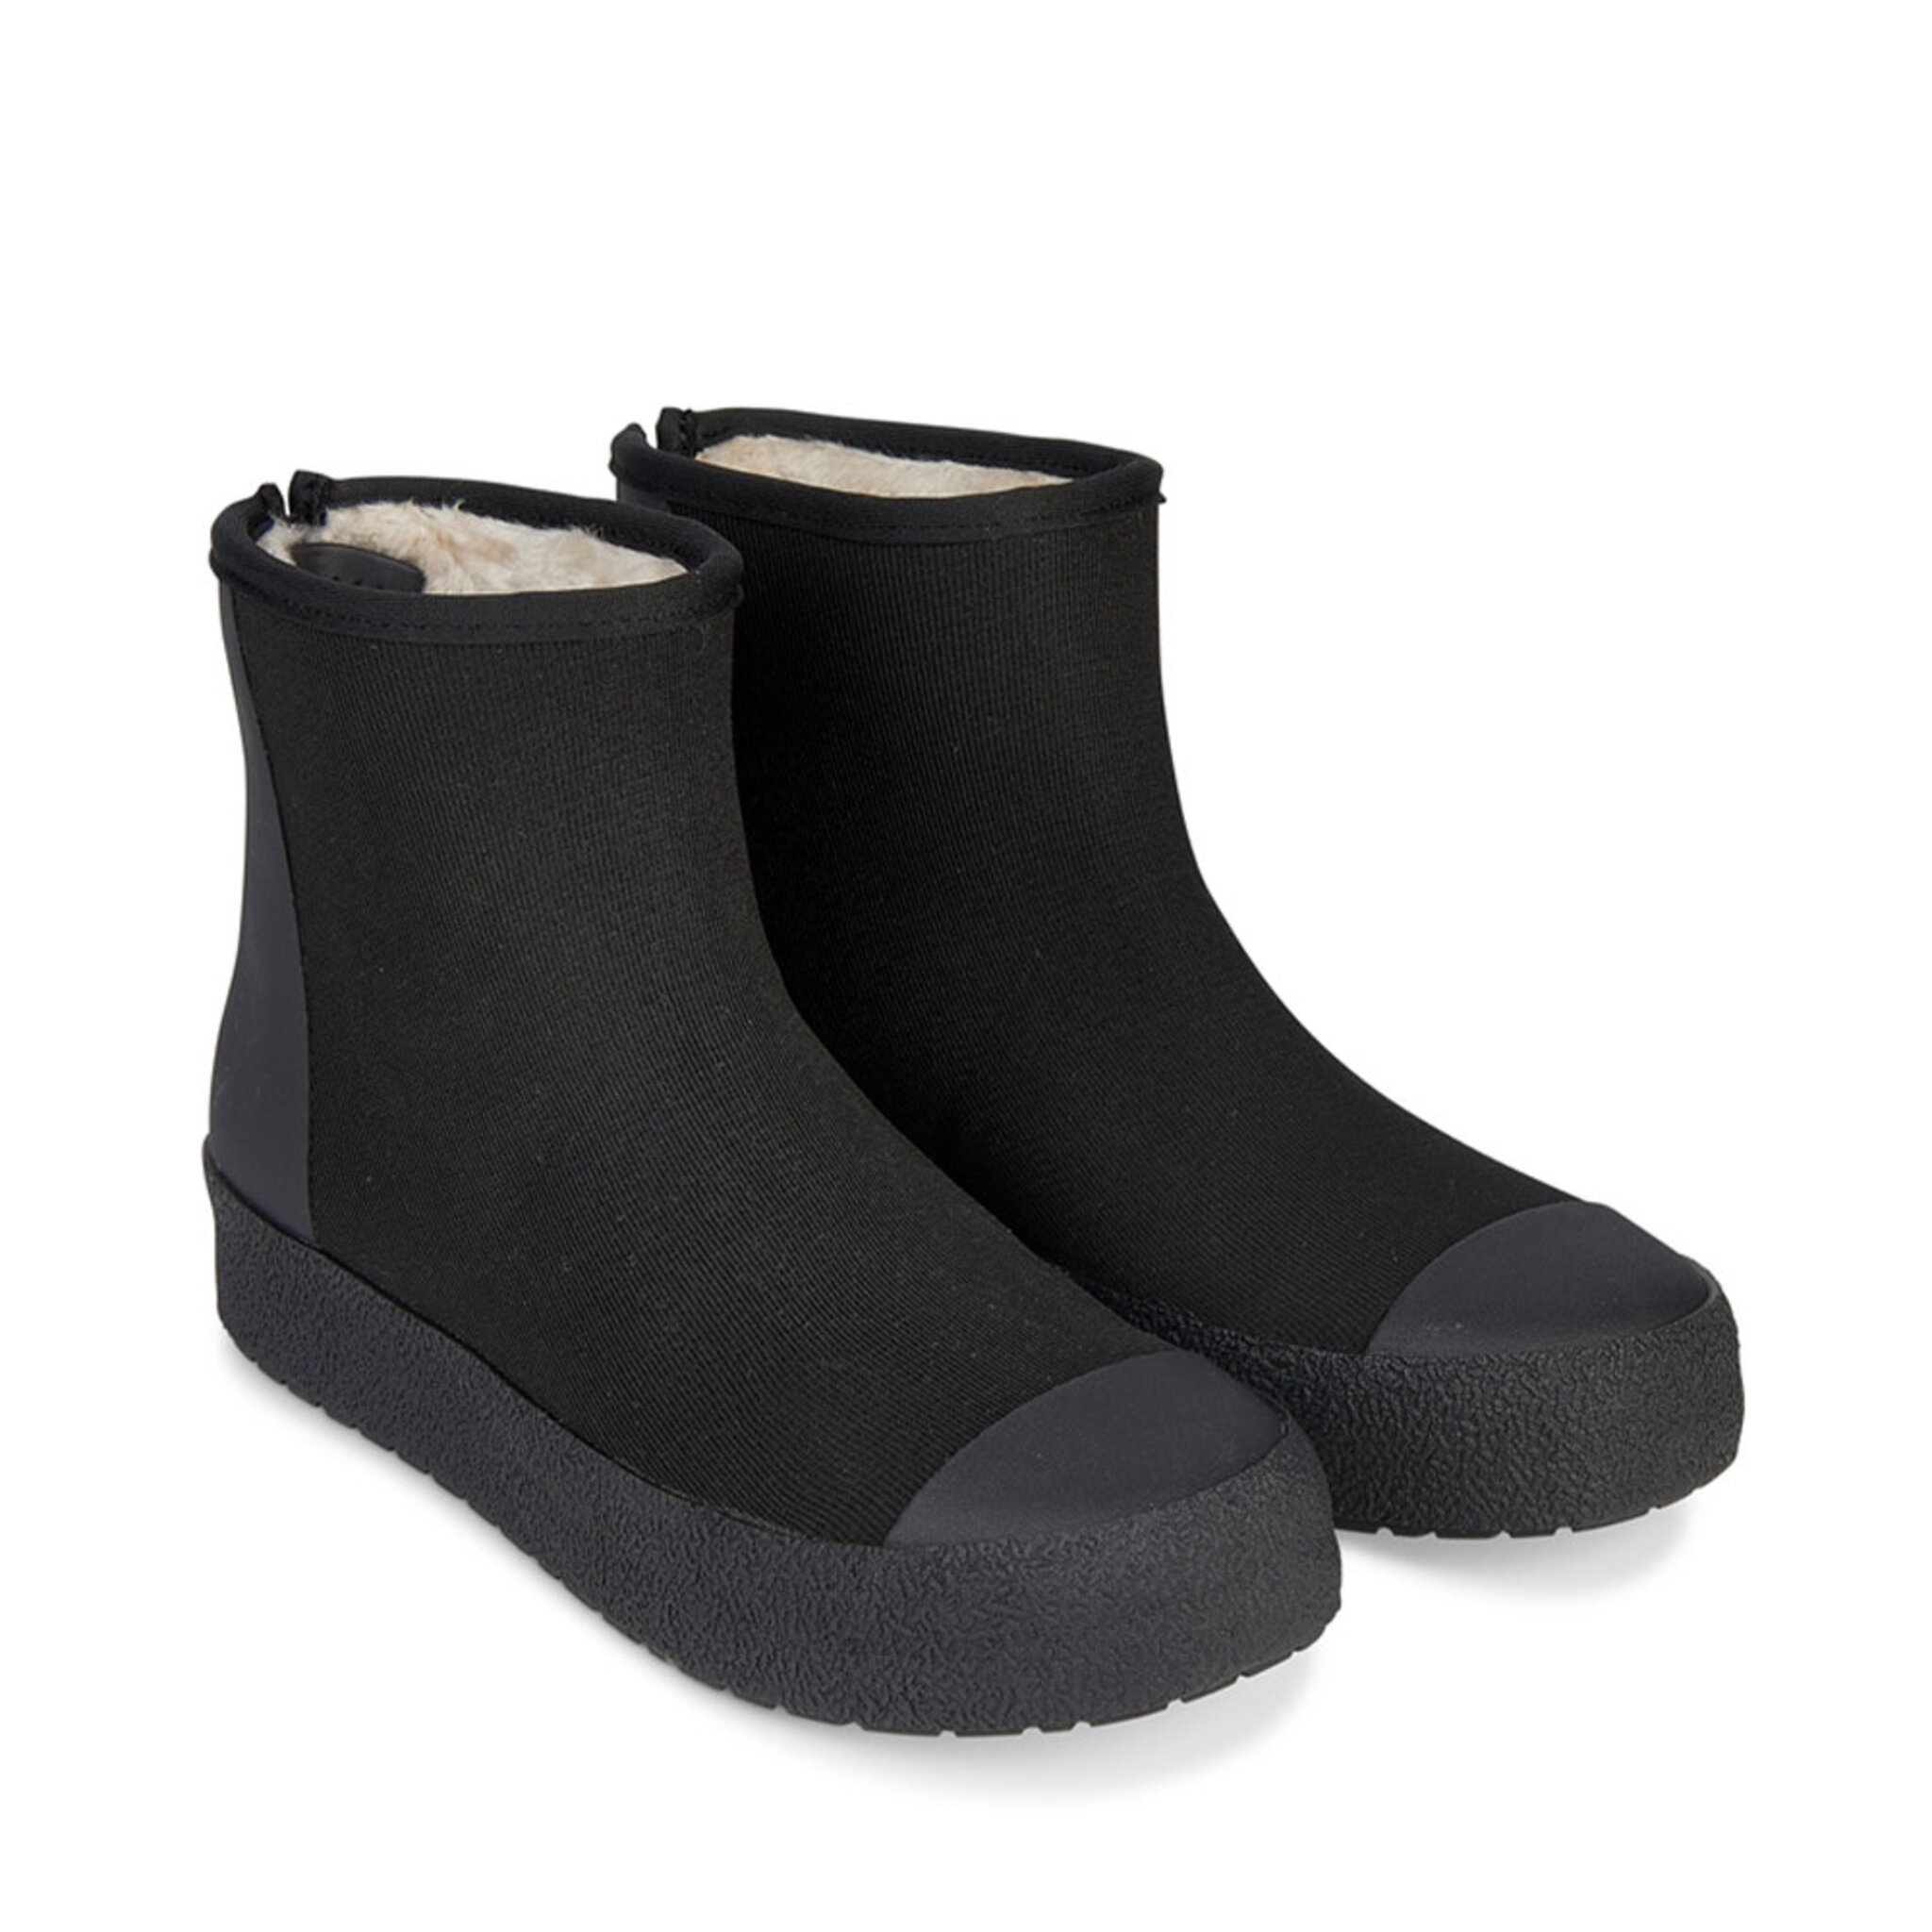 Boots Arch Hybrid